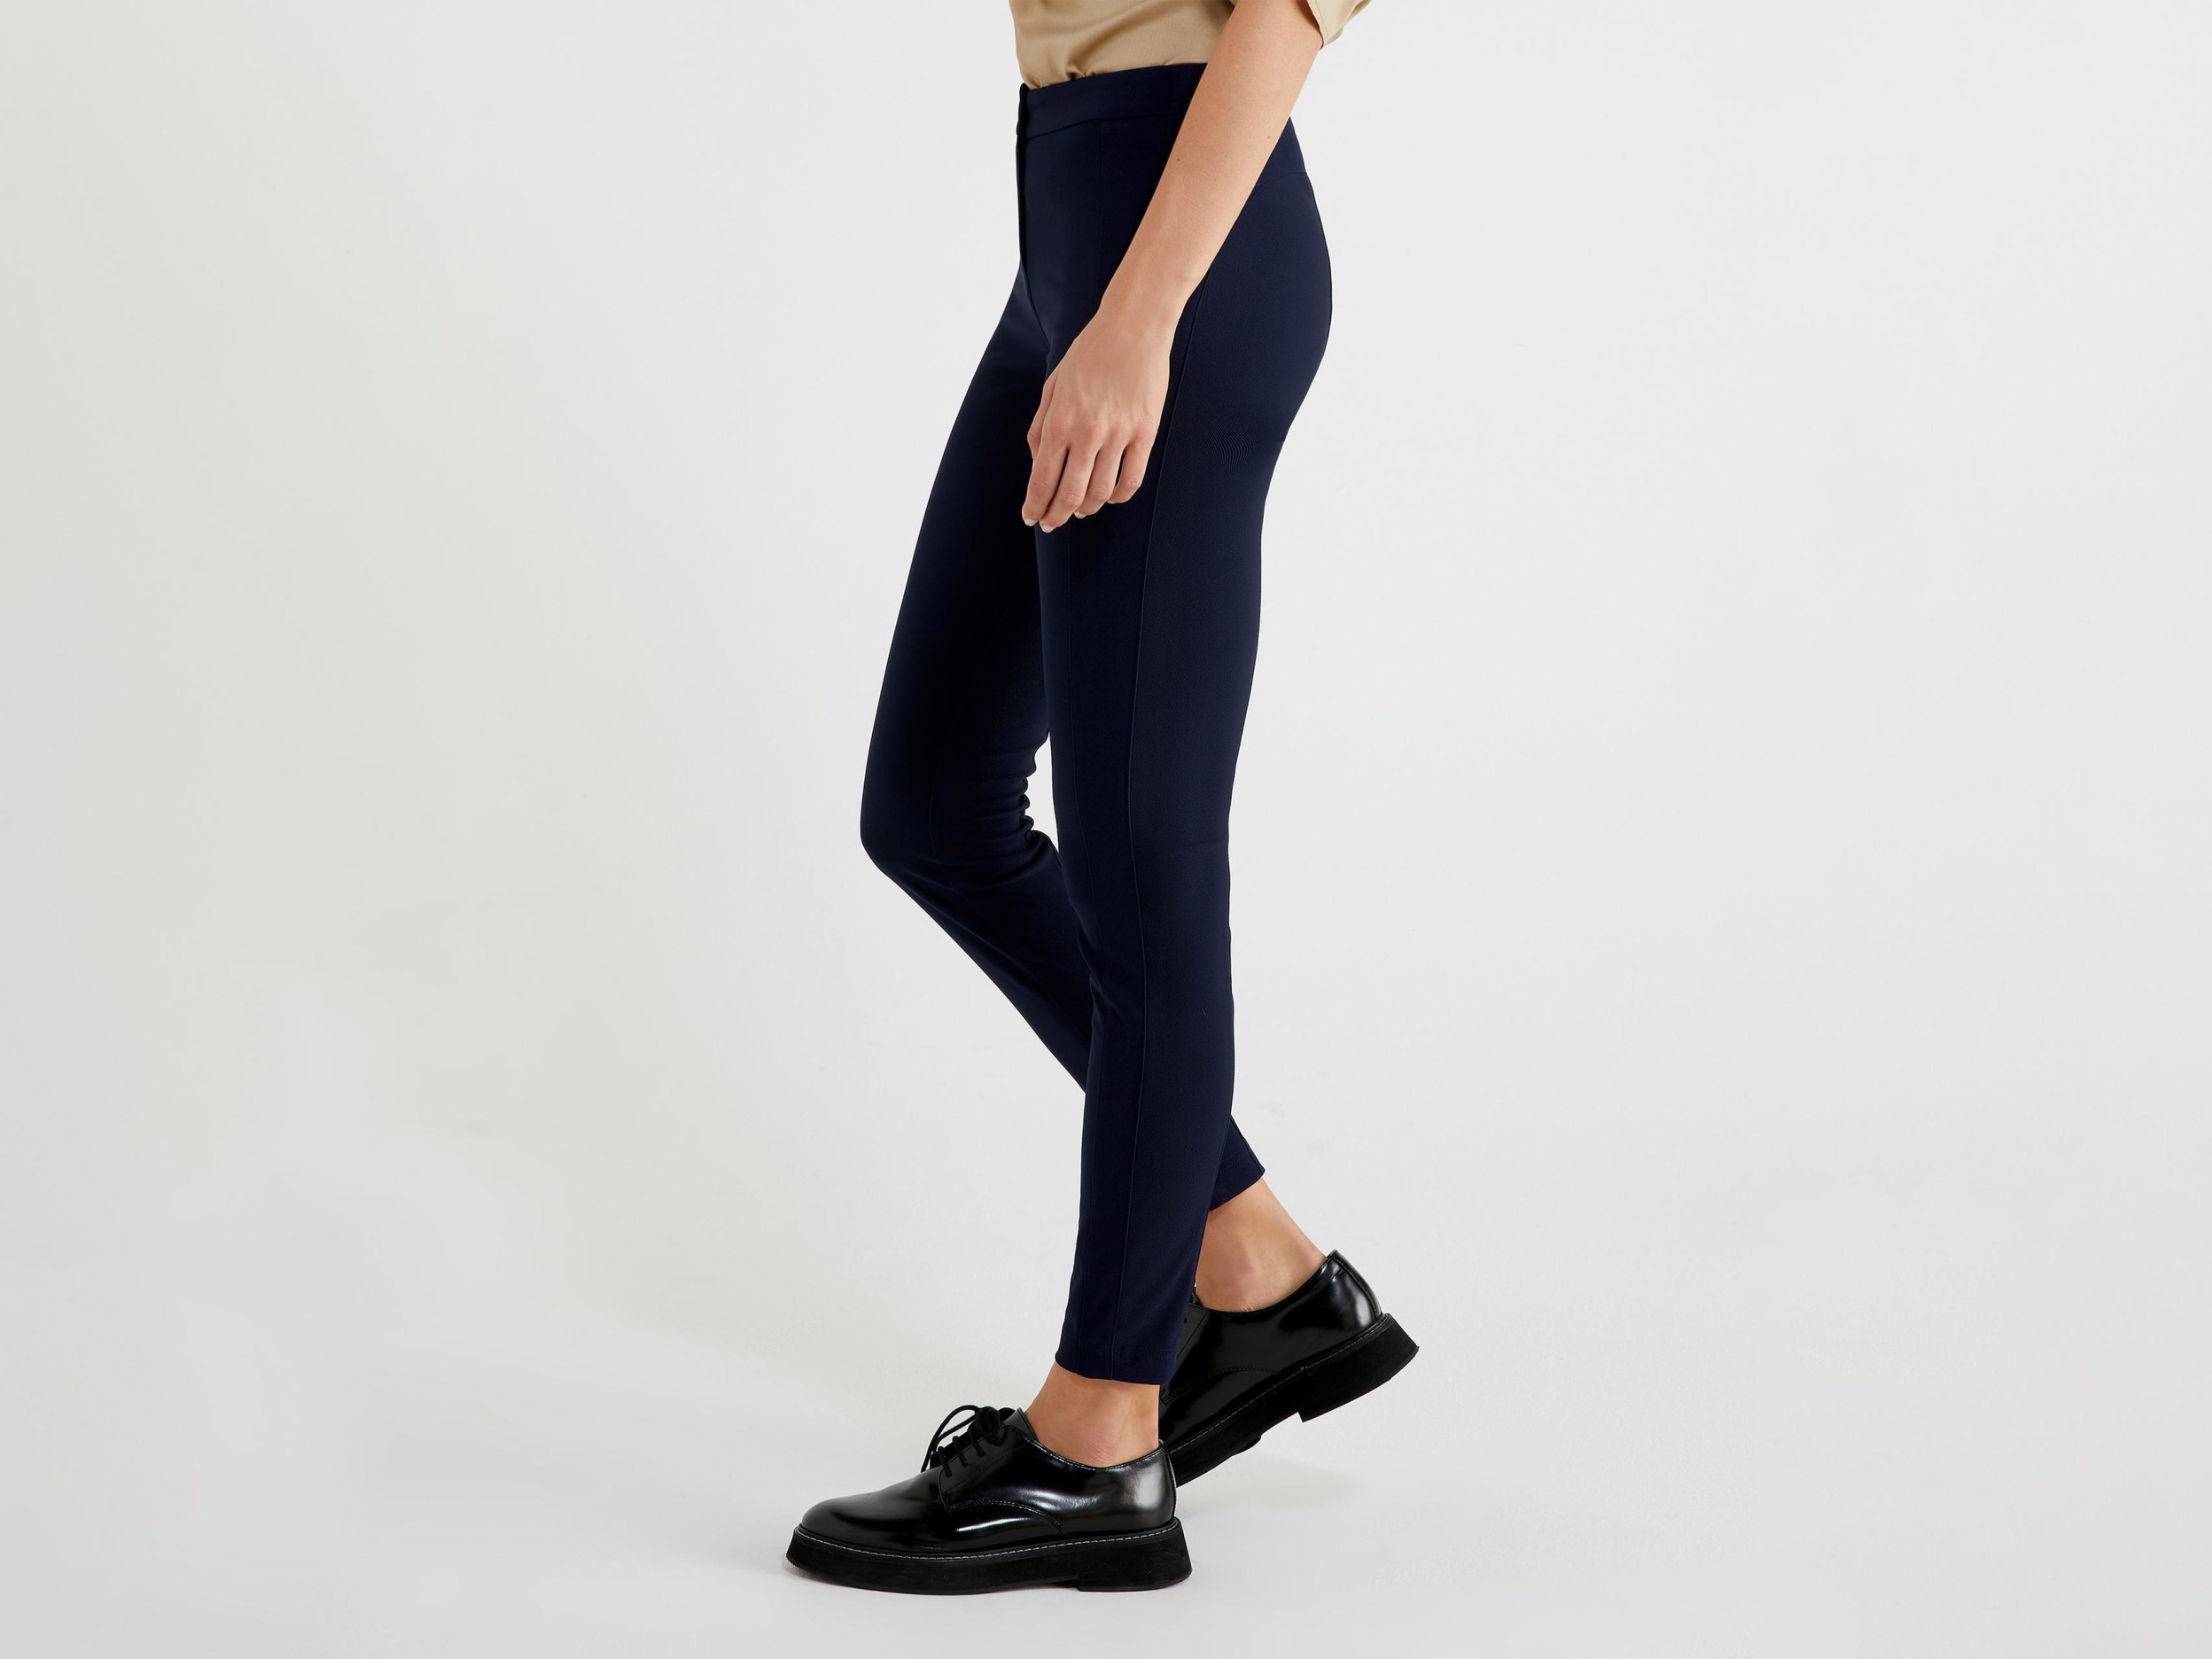 UNITED COLORS OF BENETTON Benetton, Bi-stretch-jeggings, taglia 48, Dunkelblau, Damen | UNITED COLORS OF BENETTON SALE